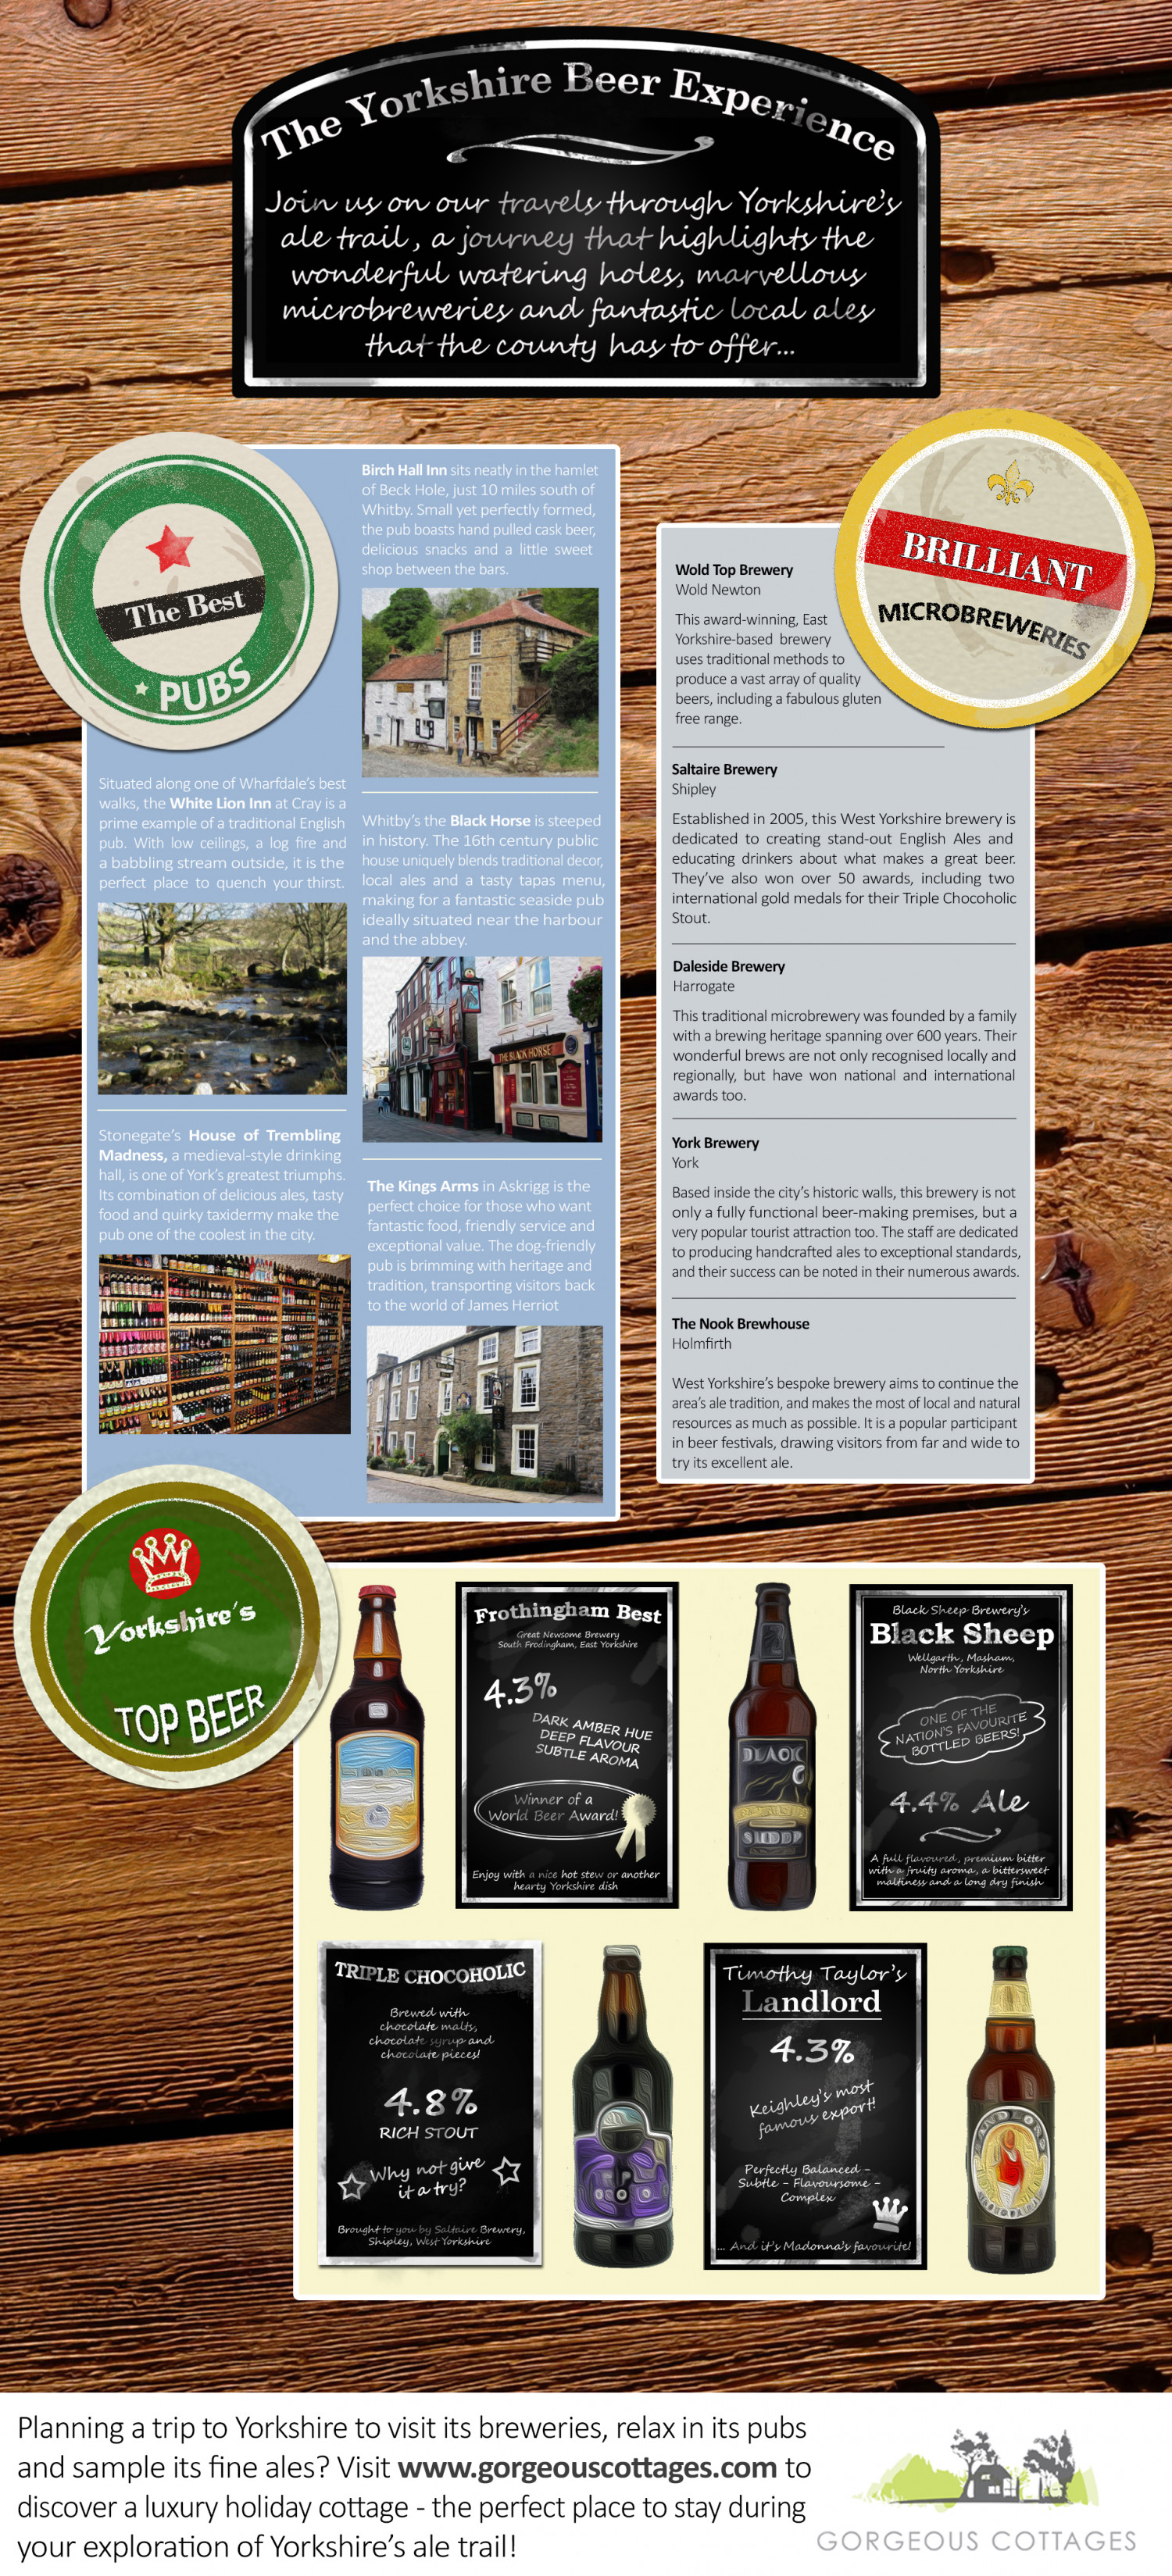 The Yorkshire Beer Experience Infographic